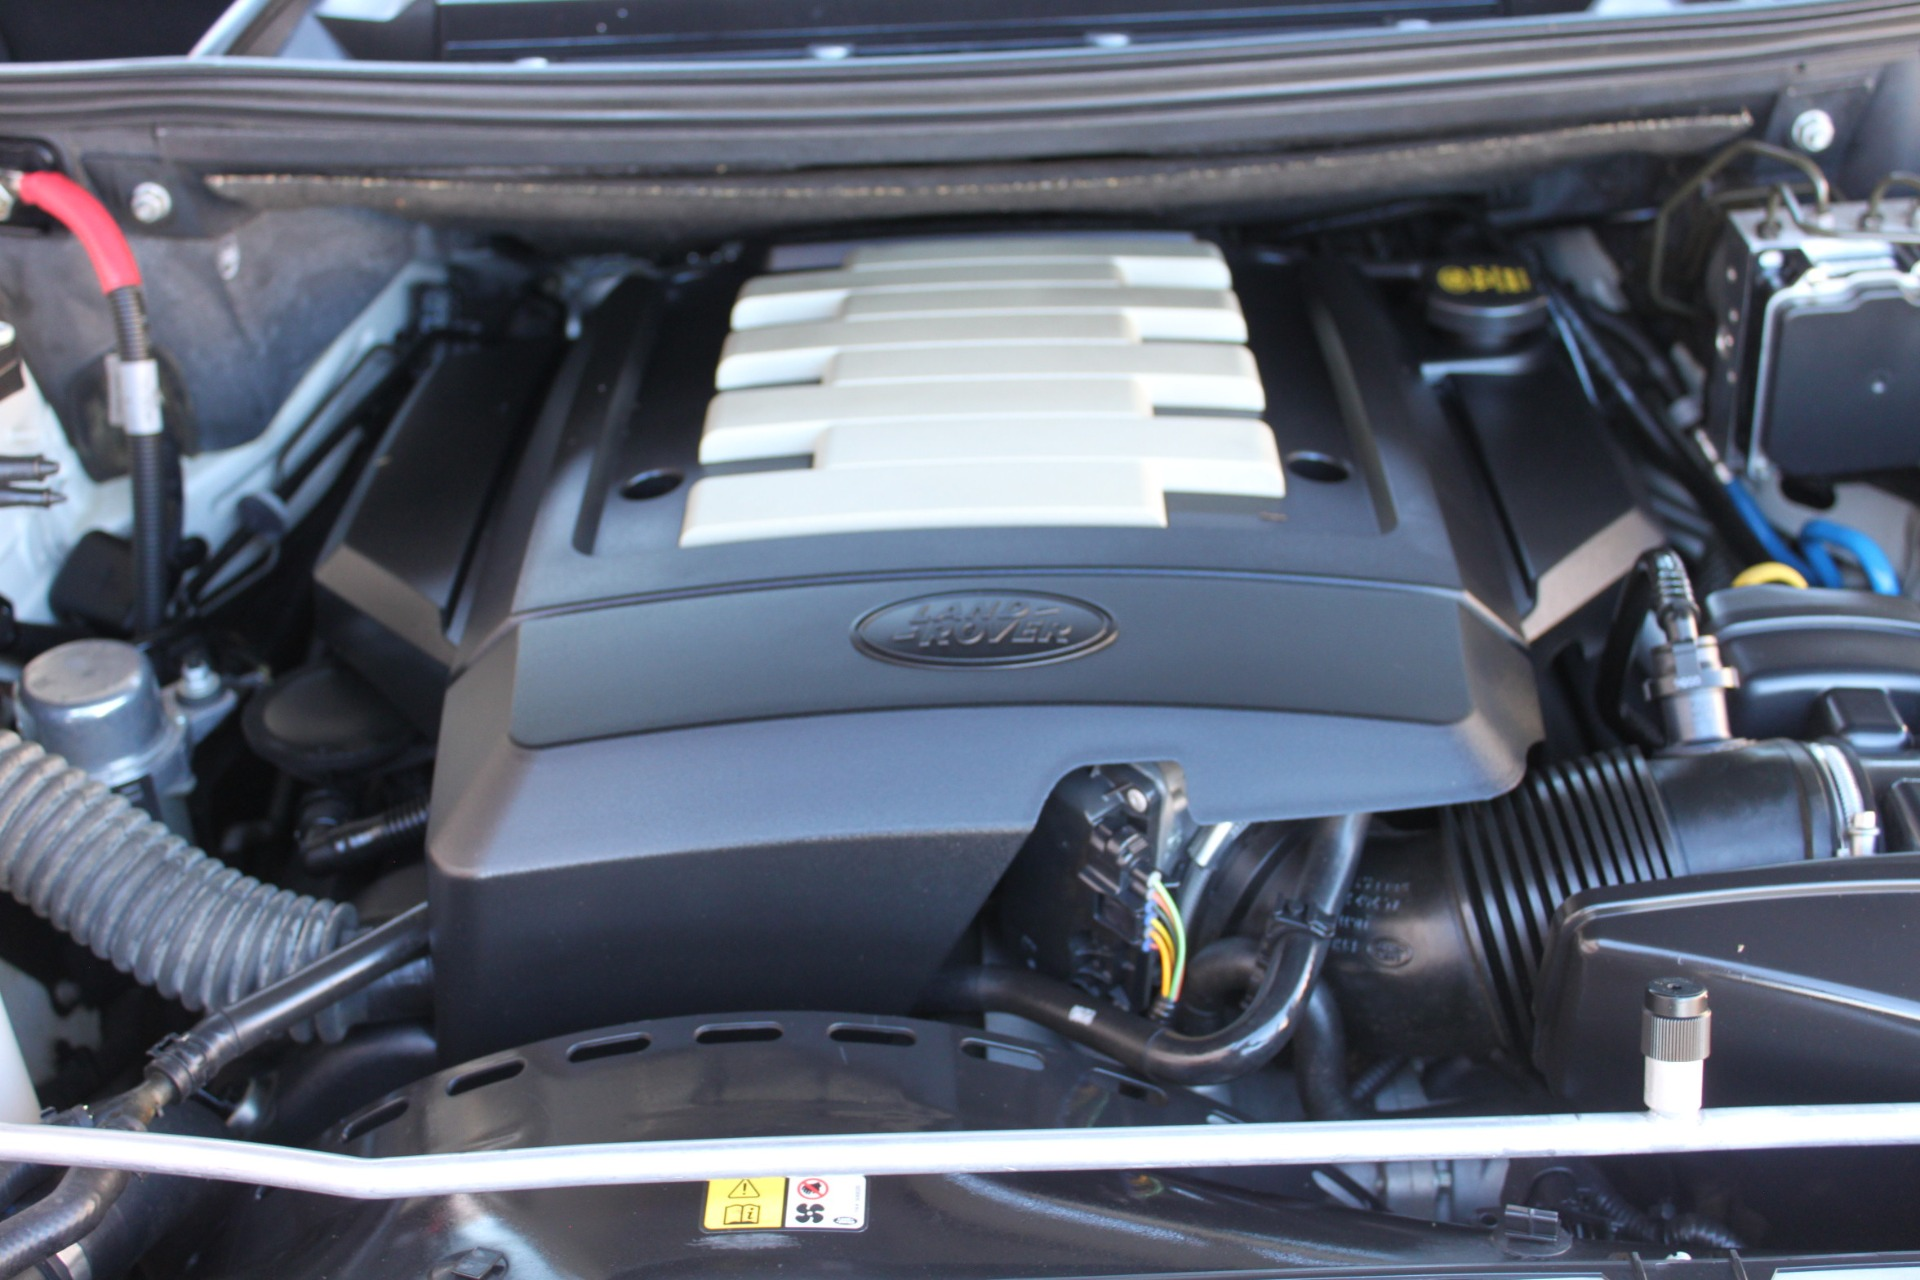 Used-2007-Land-Rover-Range-Rover-HSE-Mini